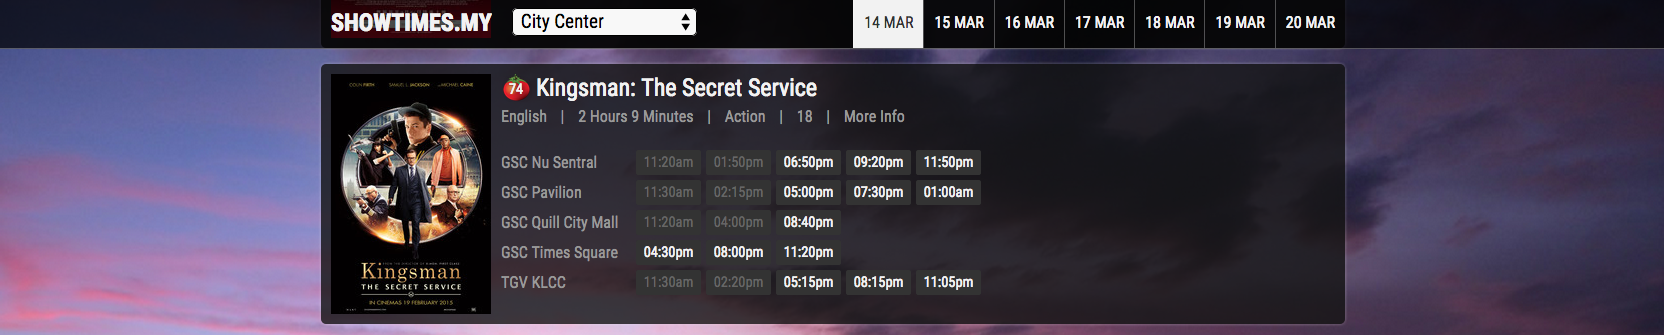 Redesigning Showtimes.my